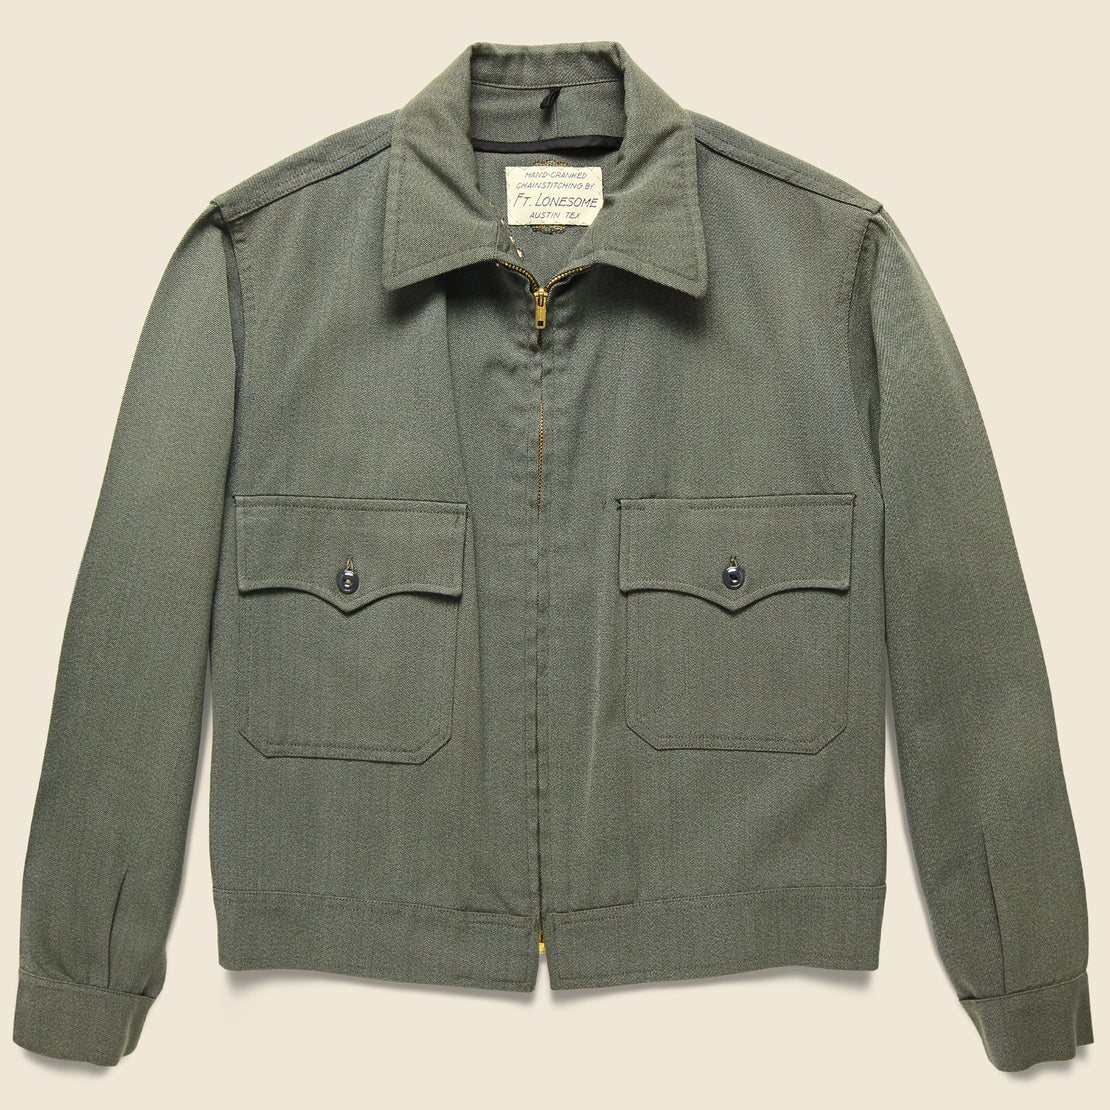 Squash Blossom Military Cropped Jacket - Sage Green